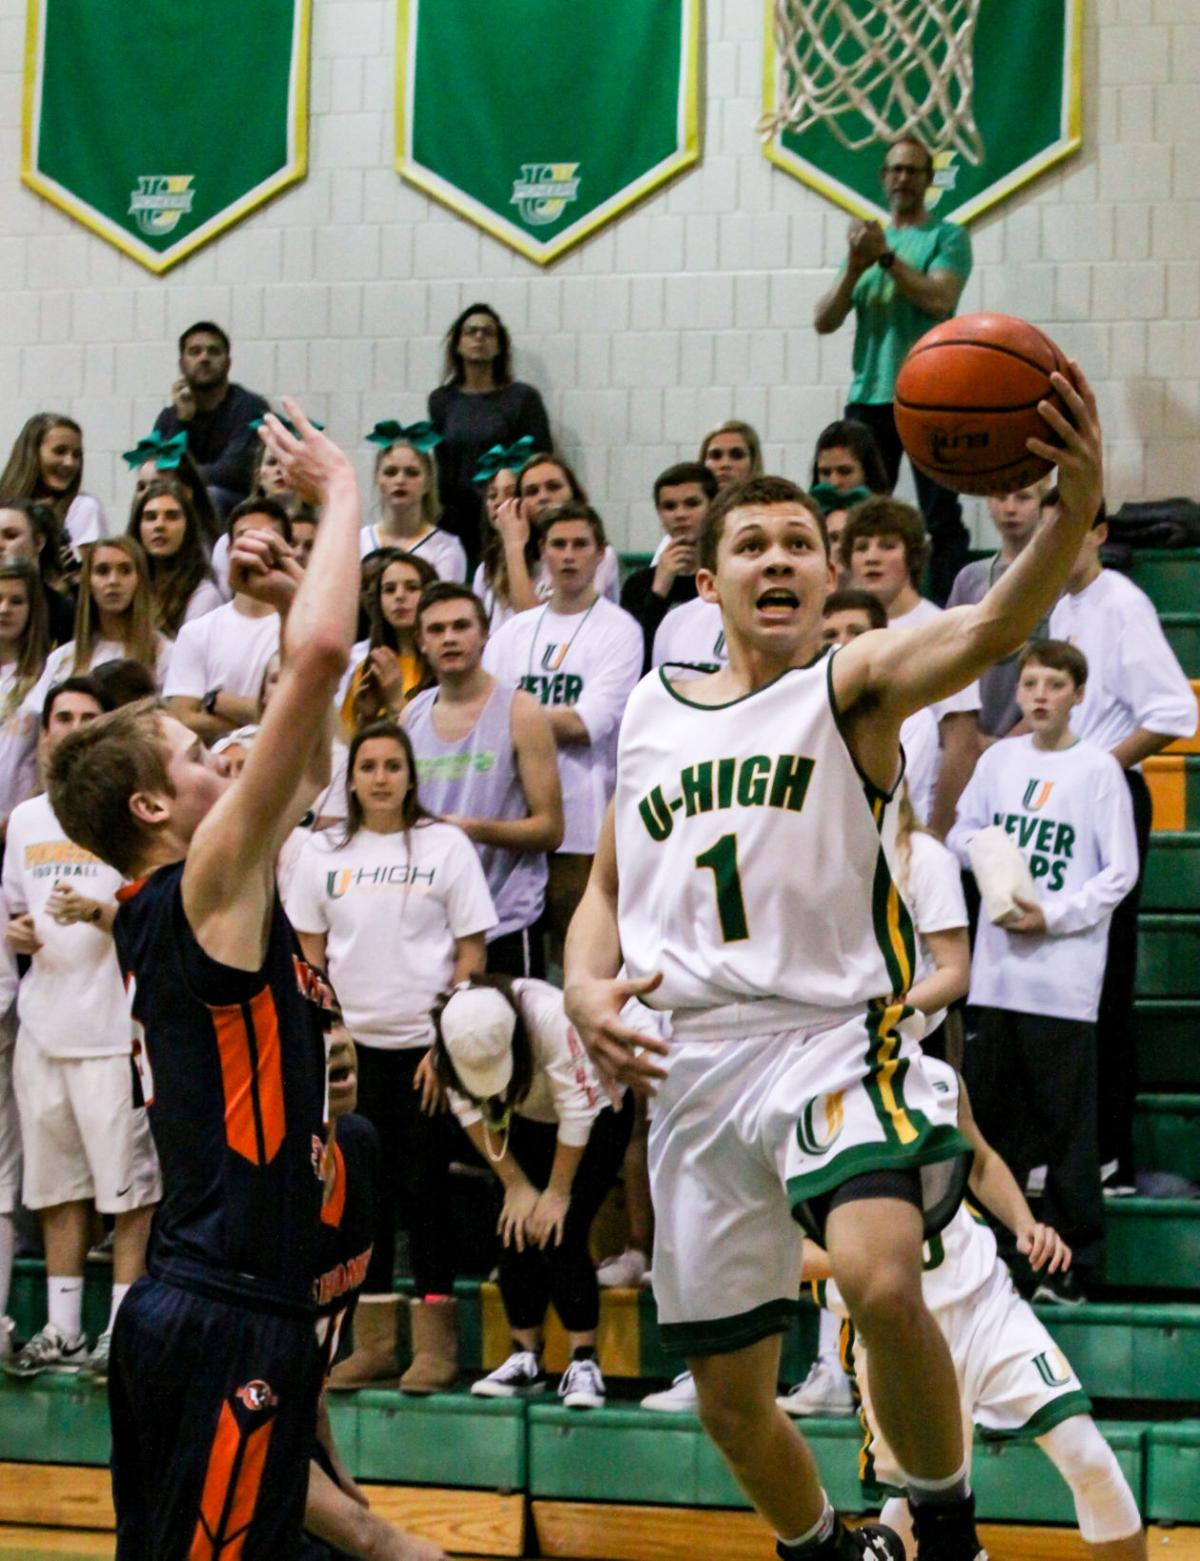 U High puts clamps on Mahomet in 2nd half | High School Boys